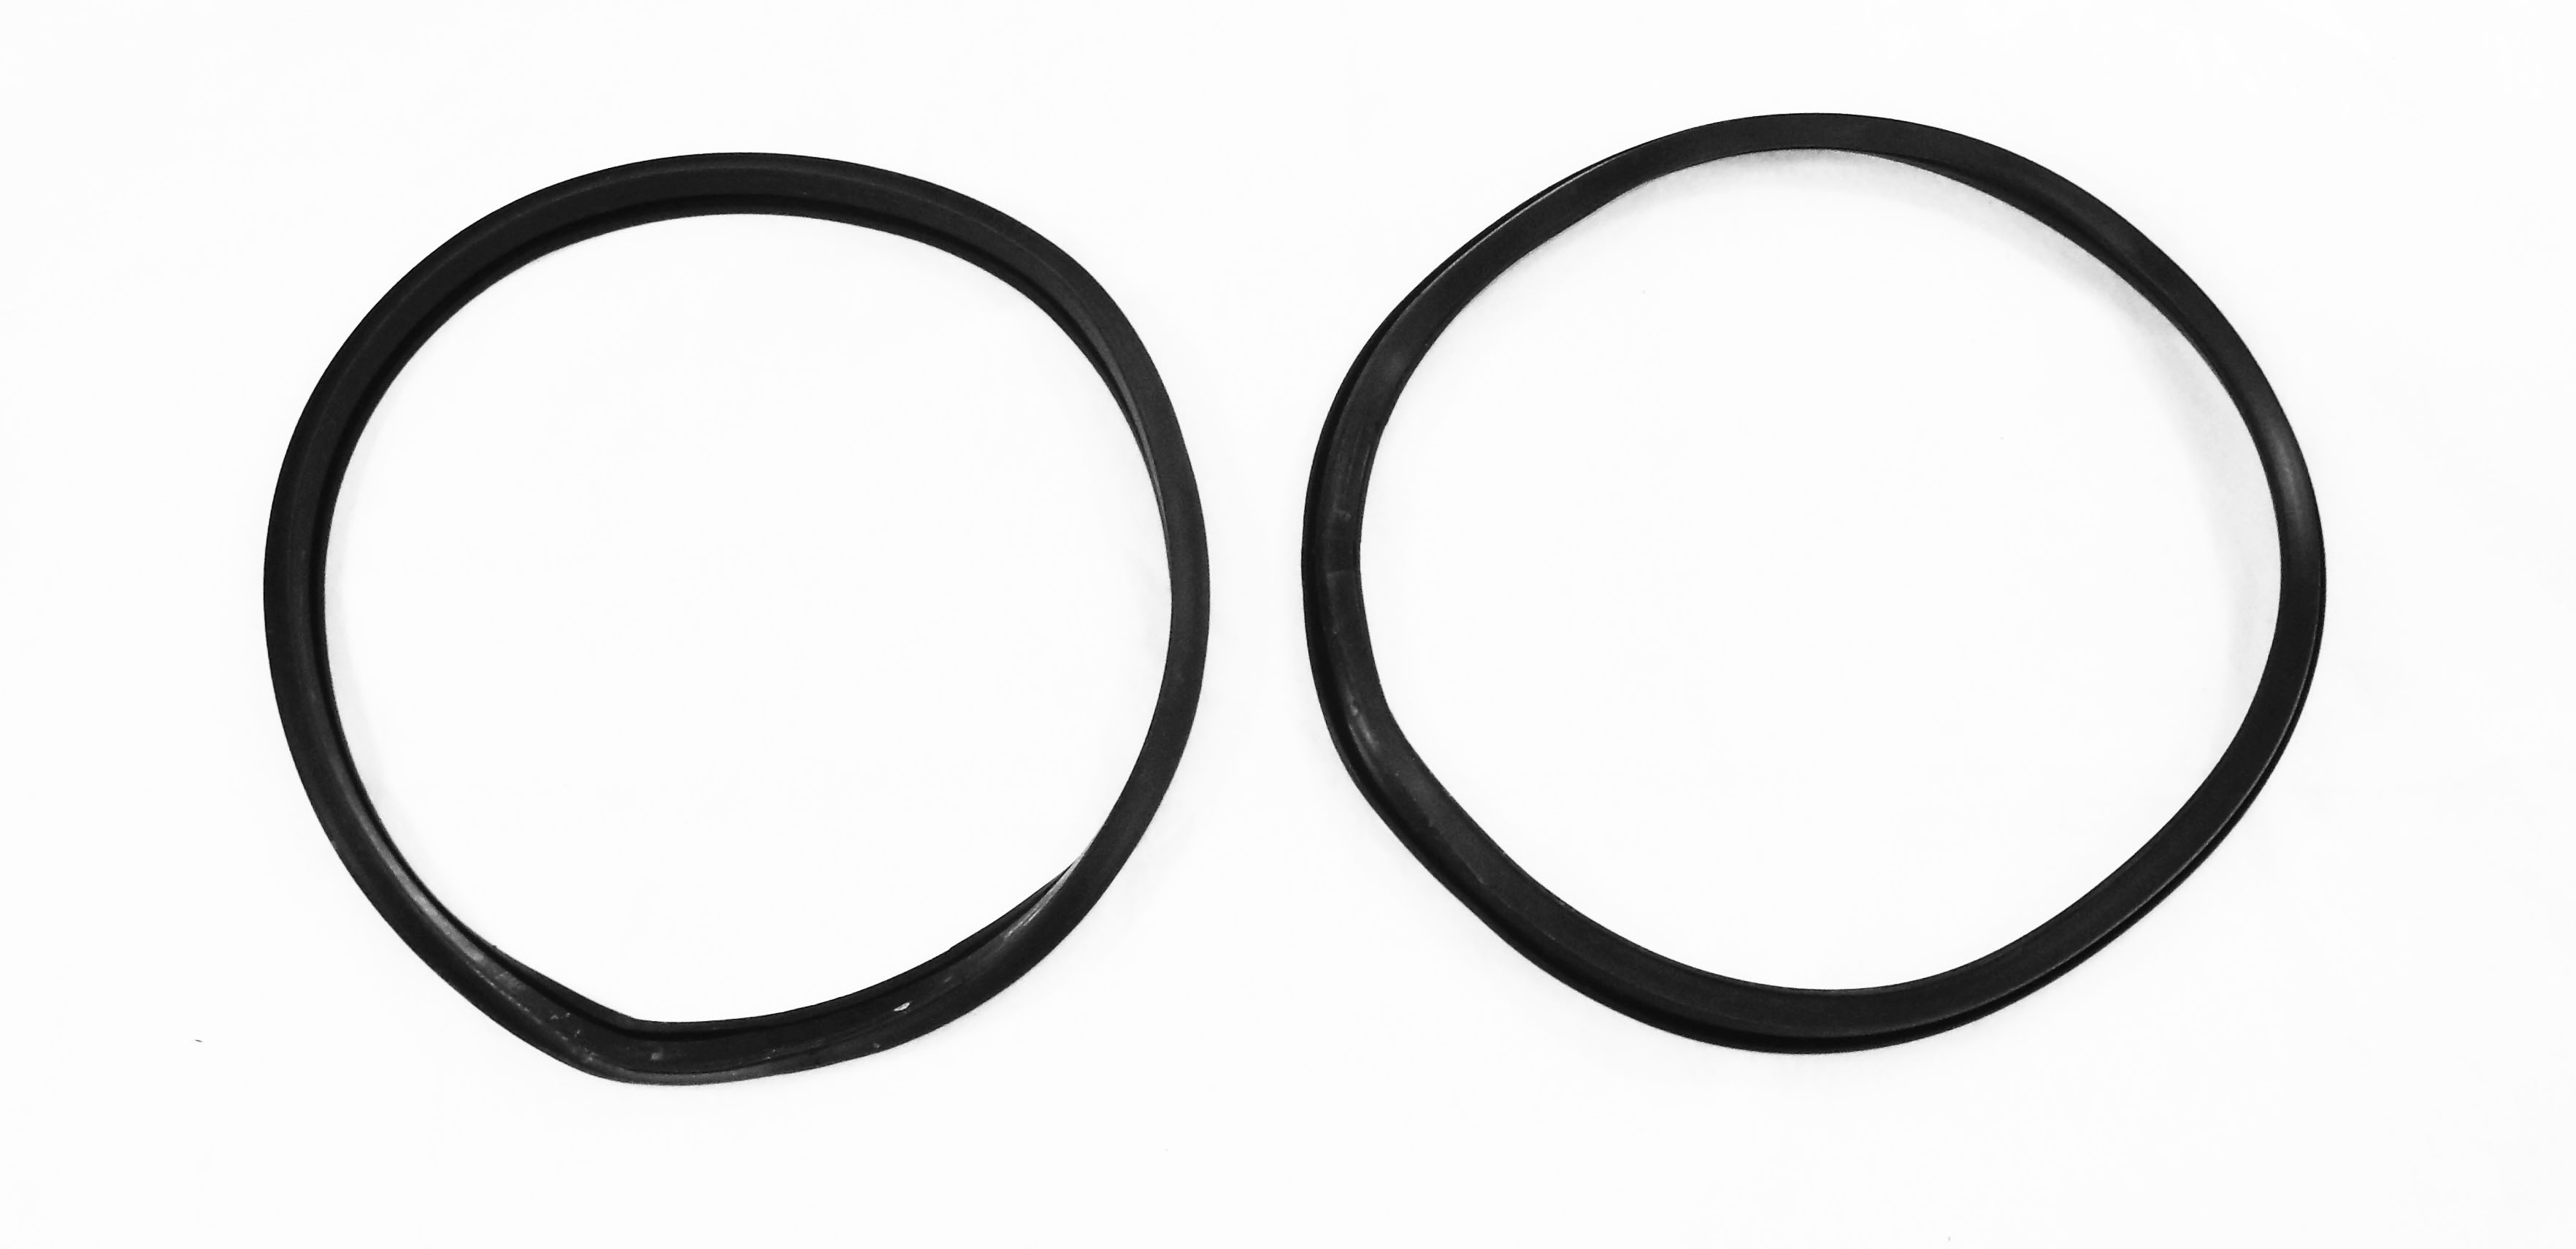 Head Light Lens Gasket For 1940-1956 Chevrolet Cars.